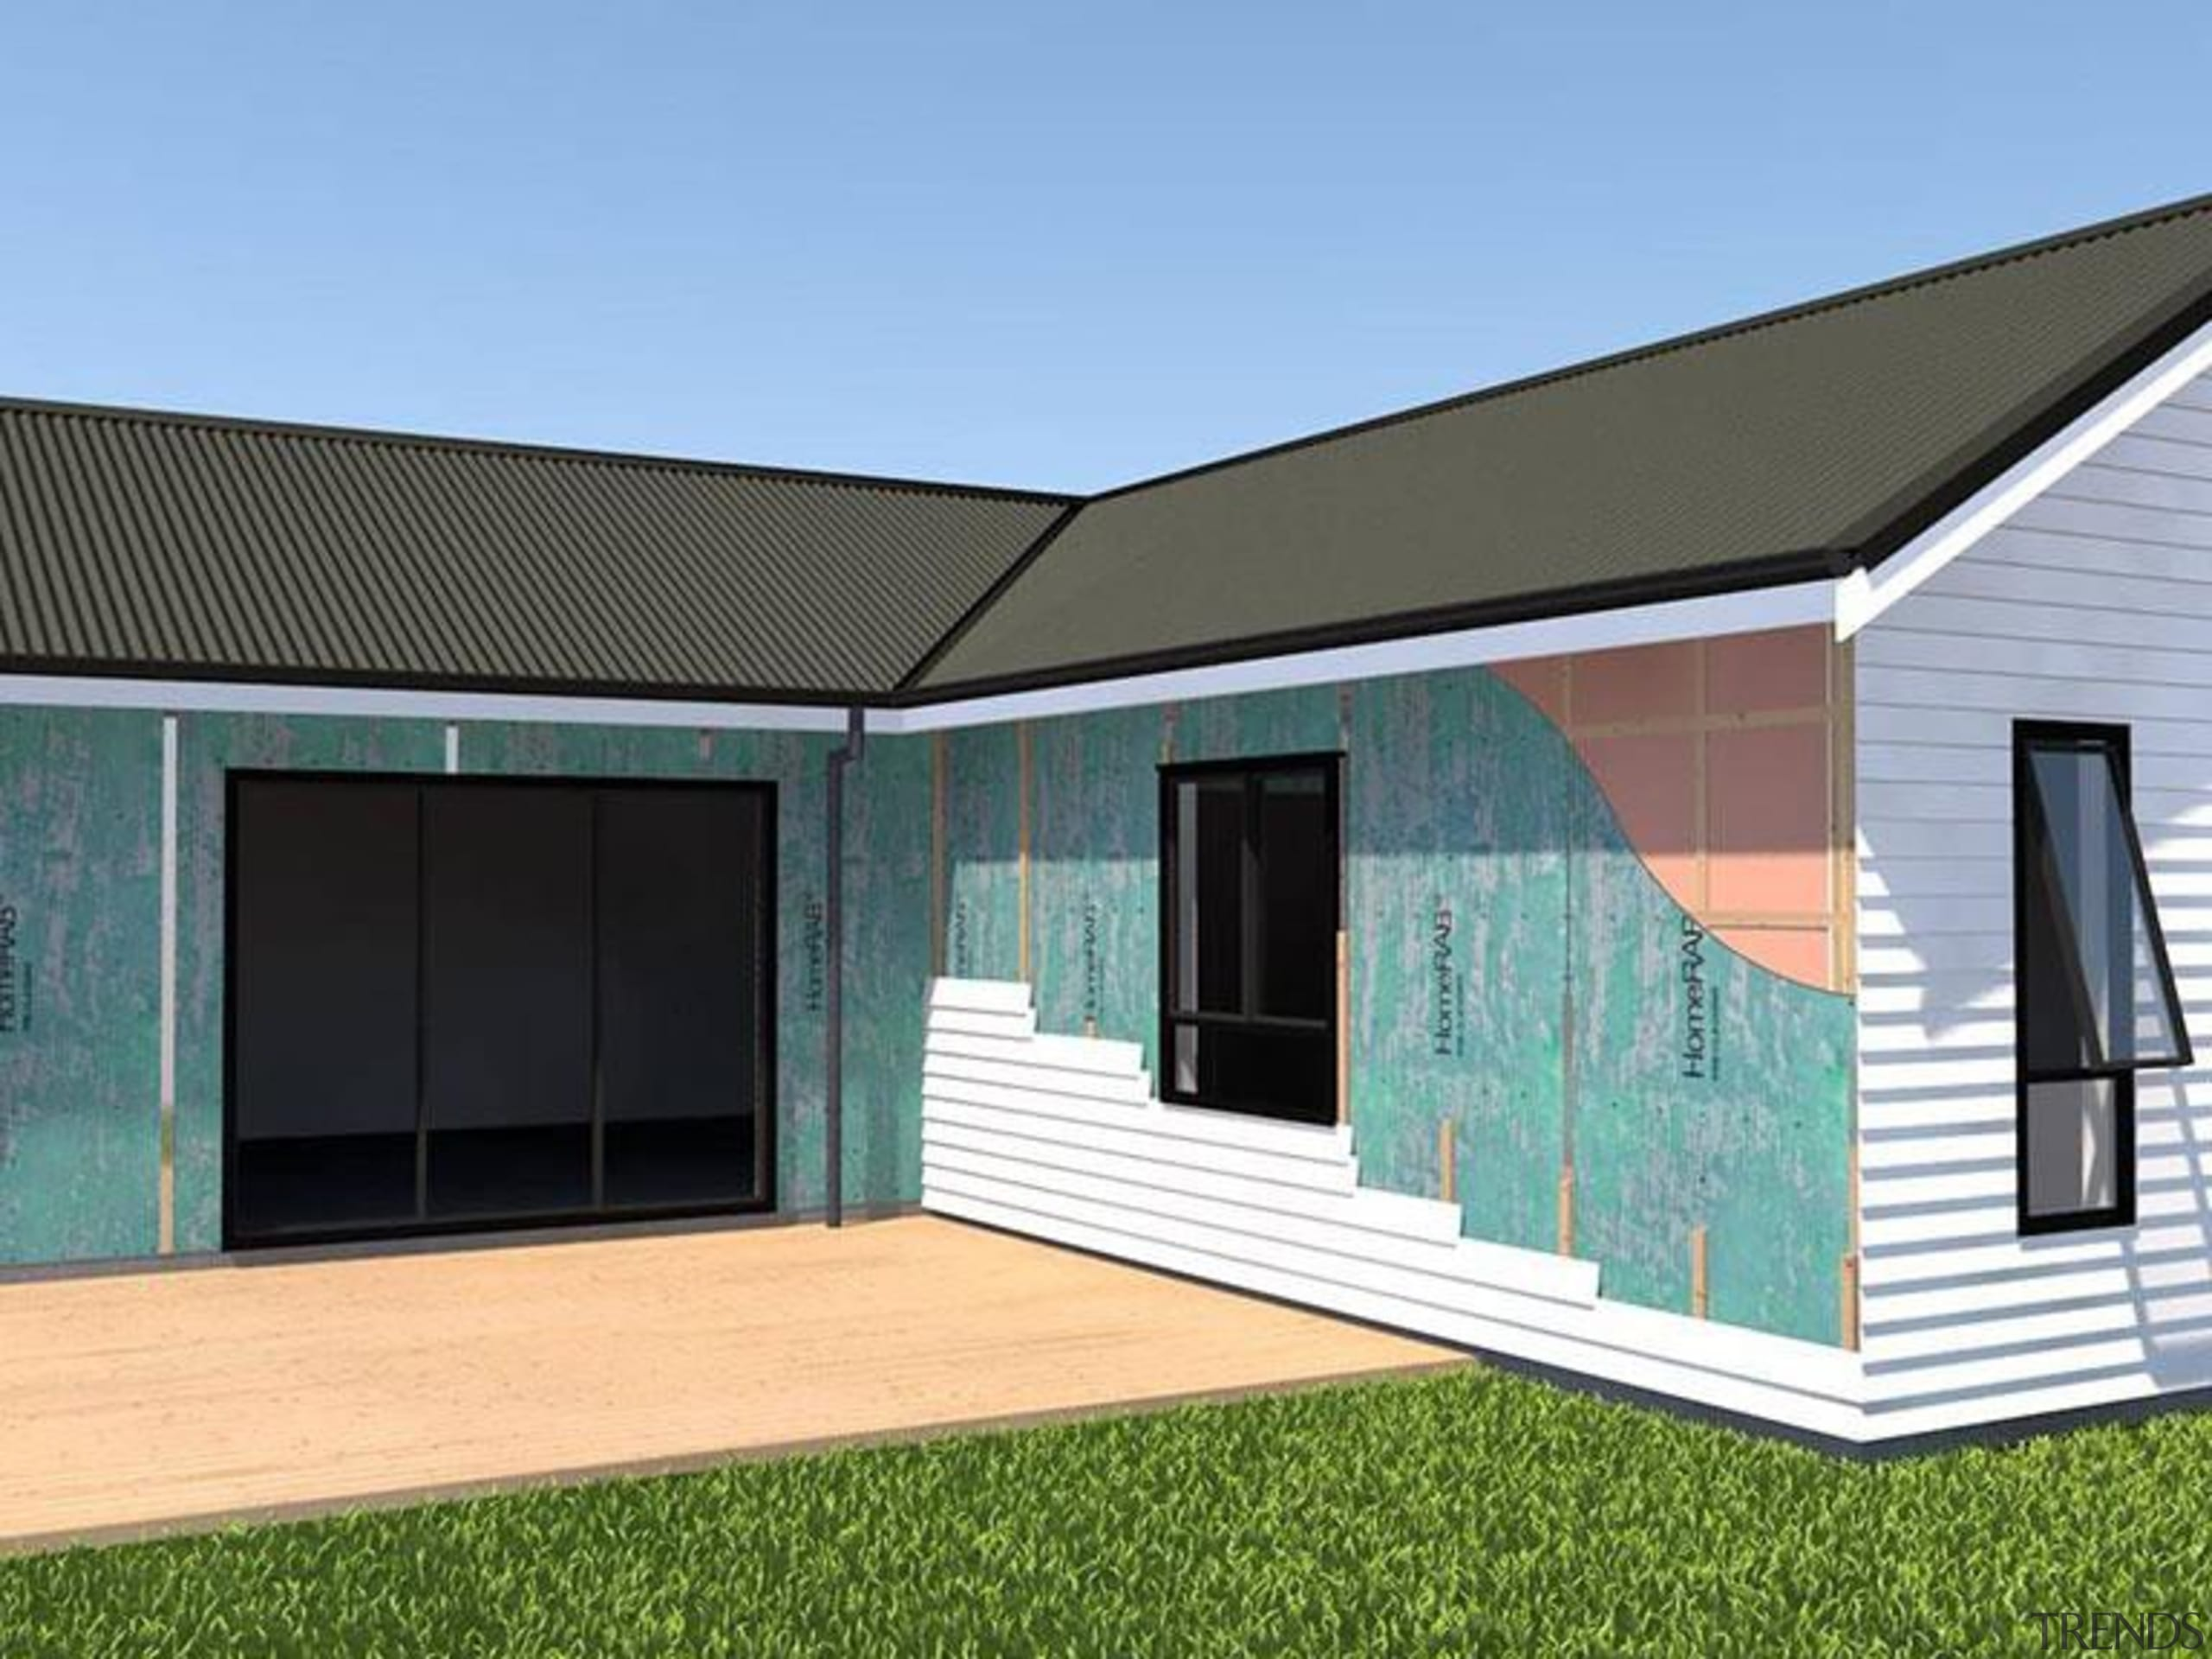 RAB Board - architecture | elevation | facade architecture, elevation, facade, home, house, property, real estate, roof, shed, siding, window, teal